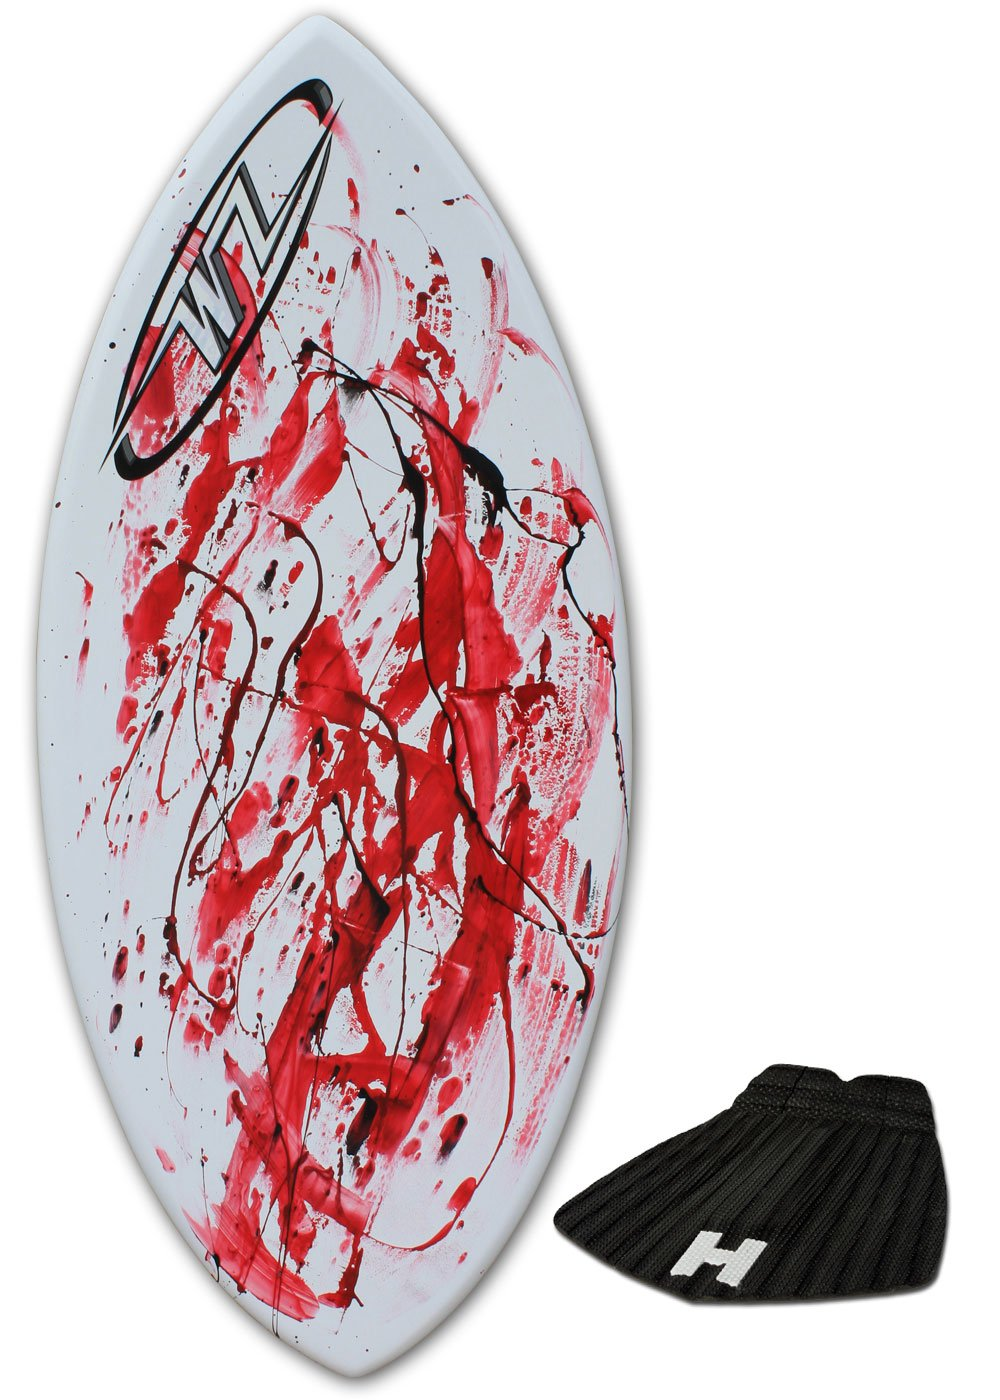 Skimboard Package 45 Fiberglass Wave Zone Surge plus Board Bag and//or Traction Pad For Riders up to 160 lbs Red